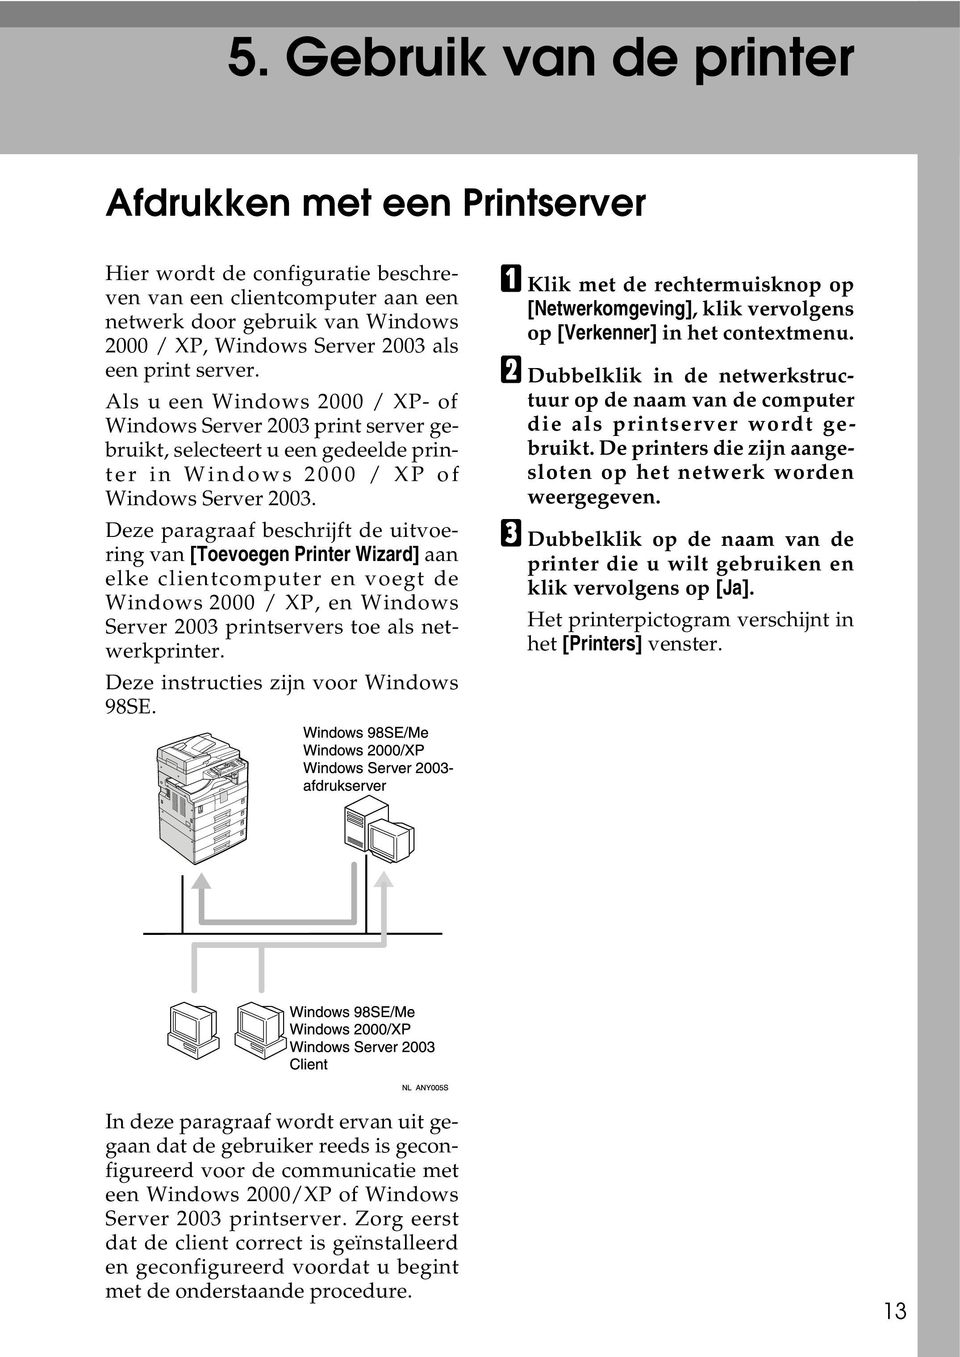 Deze paragraaf beschrijft de uitvoering van [Toevoegen Printer Wizard] aan elke clientcomputer en voegt de Windows 2000 / XP, en Windows Server 2003 printservers toe als netwerkprinter.